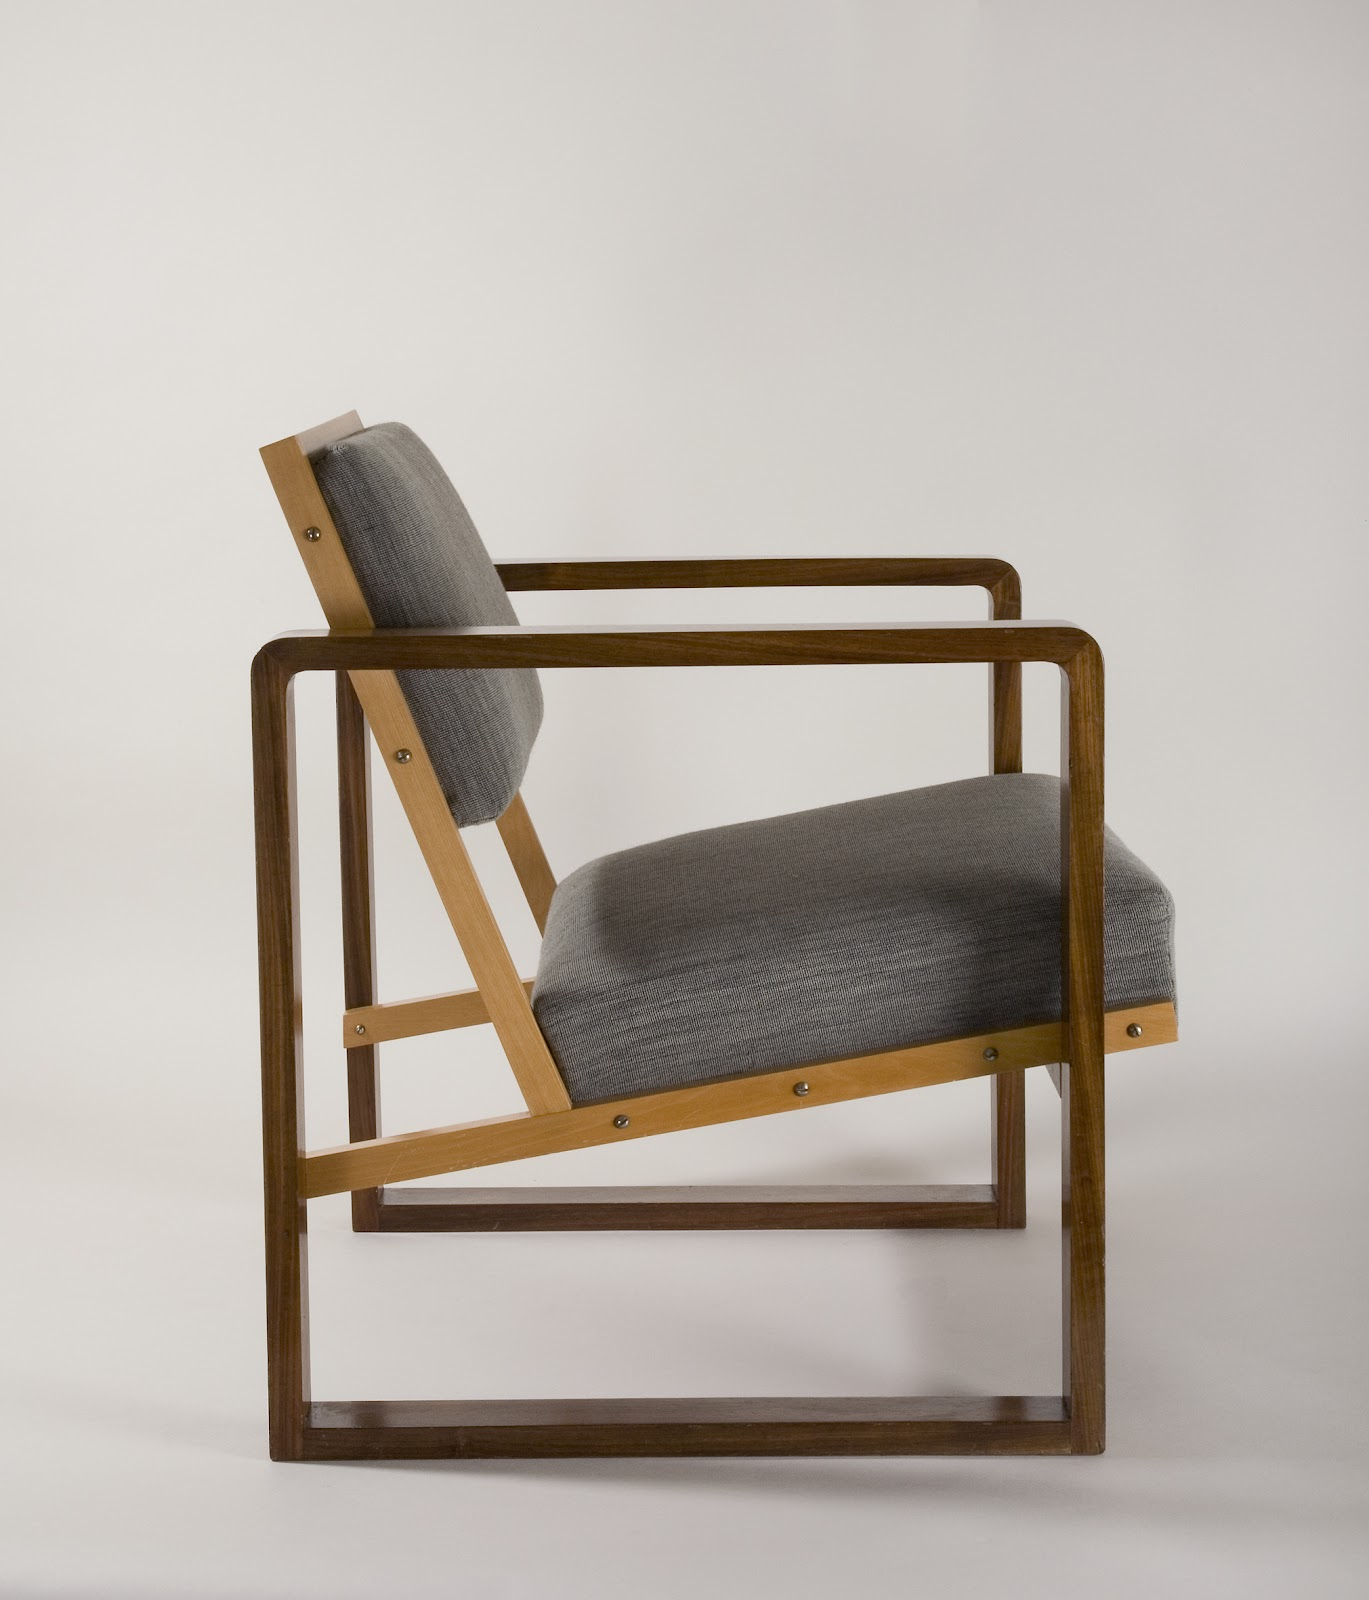 Chair Furniture Design: Art-Corpus: Review Of Bauhaus: Art As Life At The Barbican